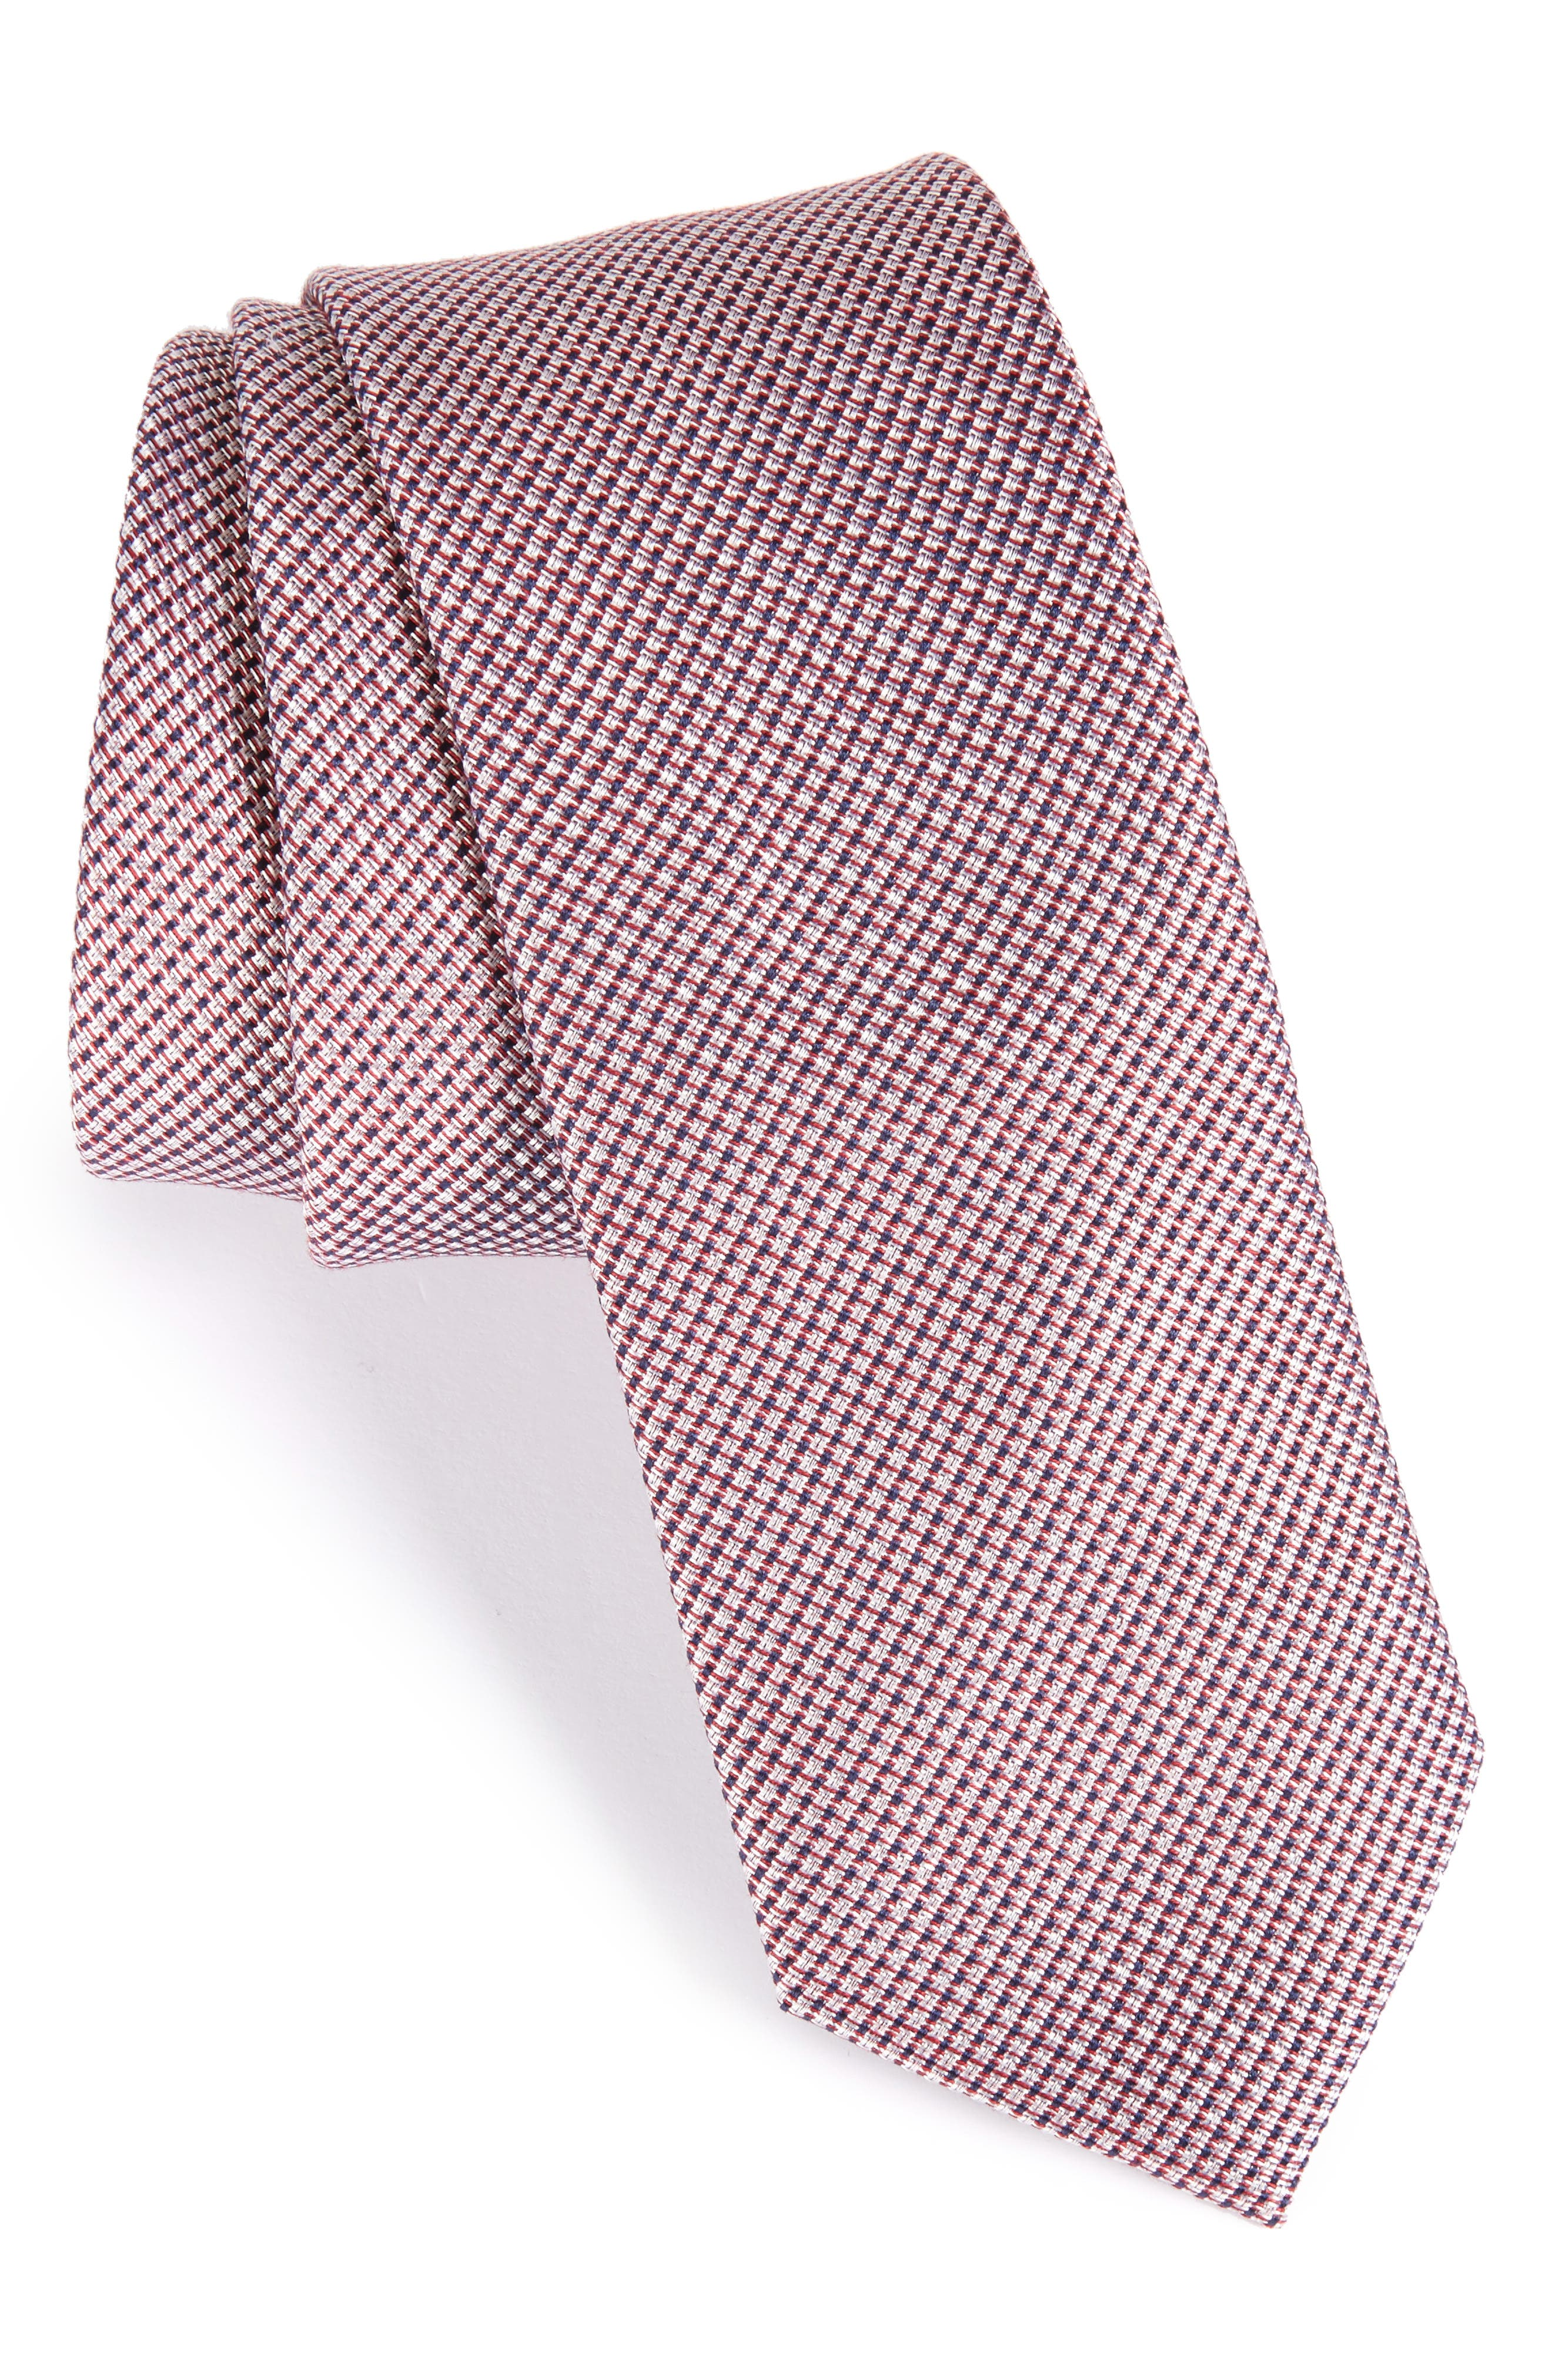 Alternate Image 1 Selected - Nordstrom Men's Shop Solid Silk & Cotton Skinny Tie